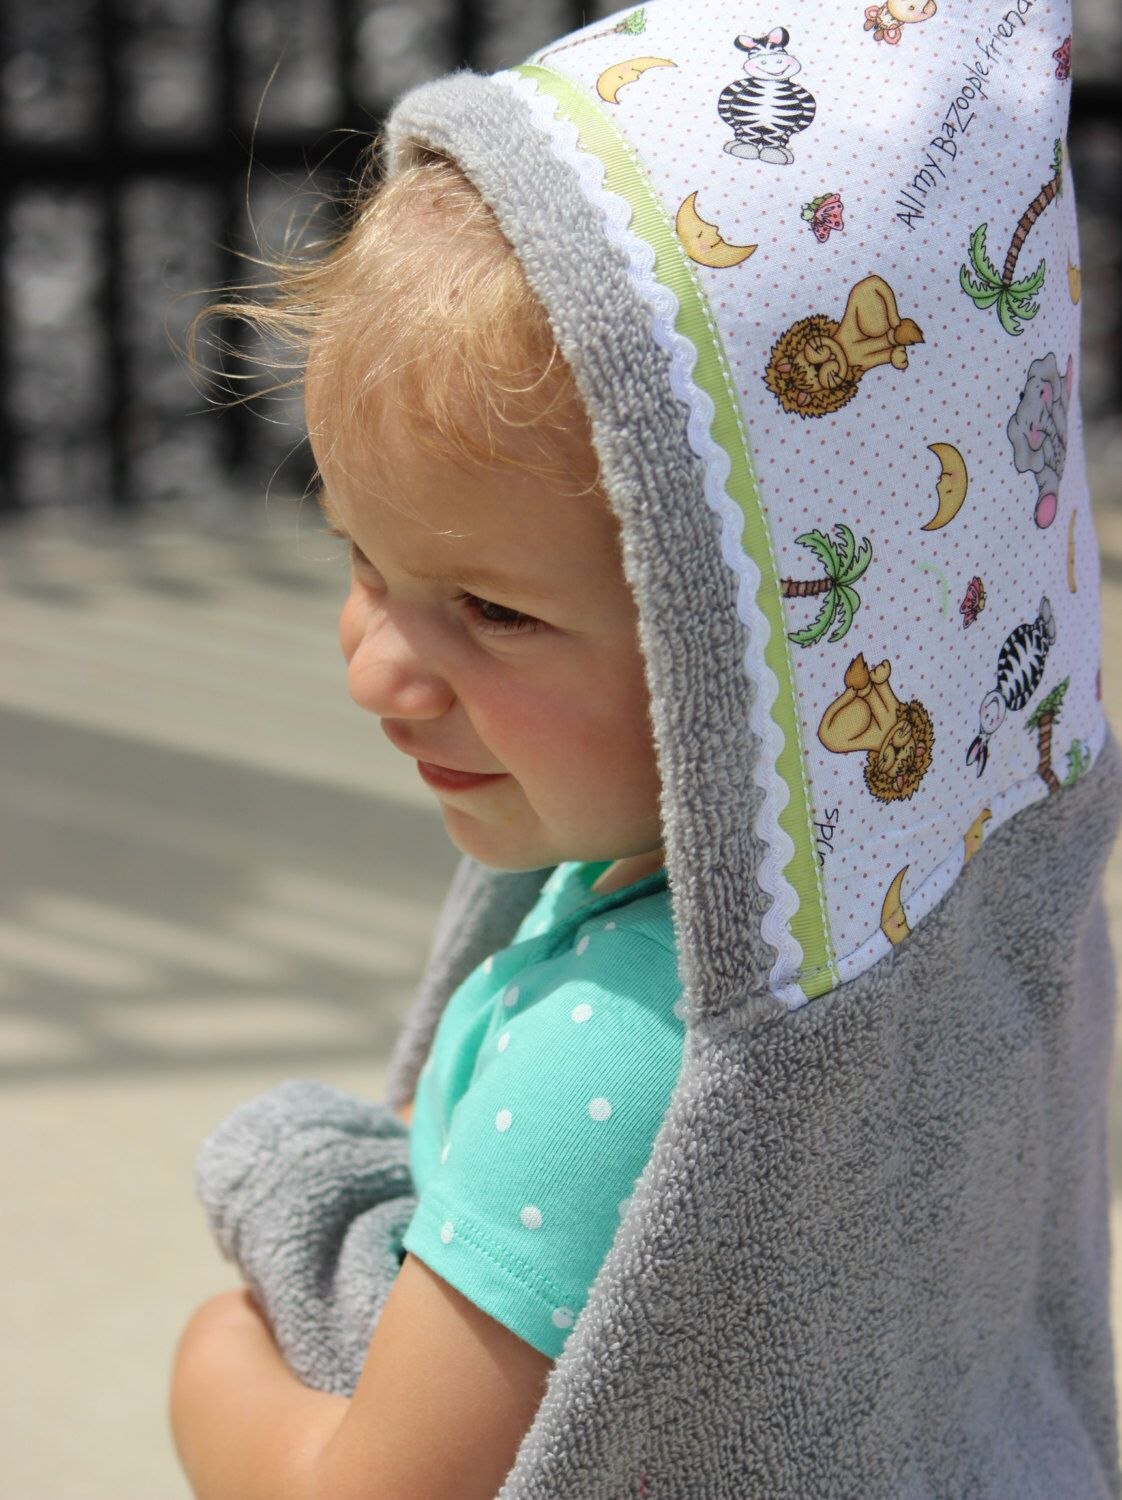 Safari animals baby hooded towelbaby bath towelpersonalized towels zoo animals baby hooded towelbaby bath towelpersonalized towelsbaby towel gift negle Image collections